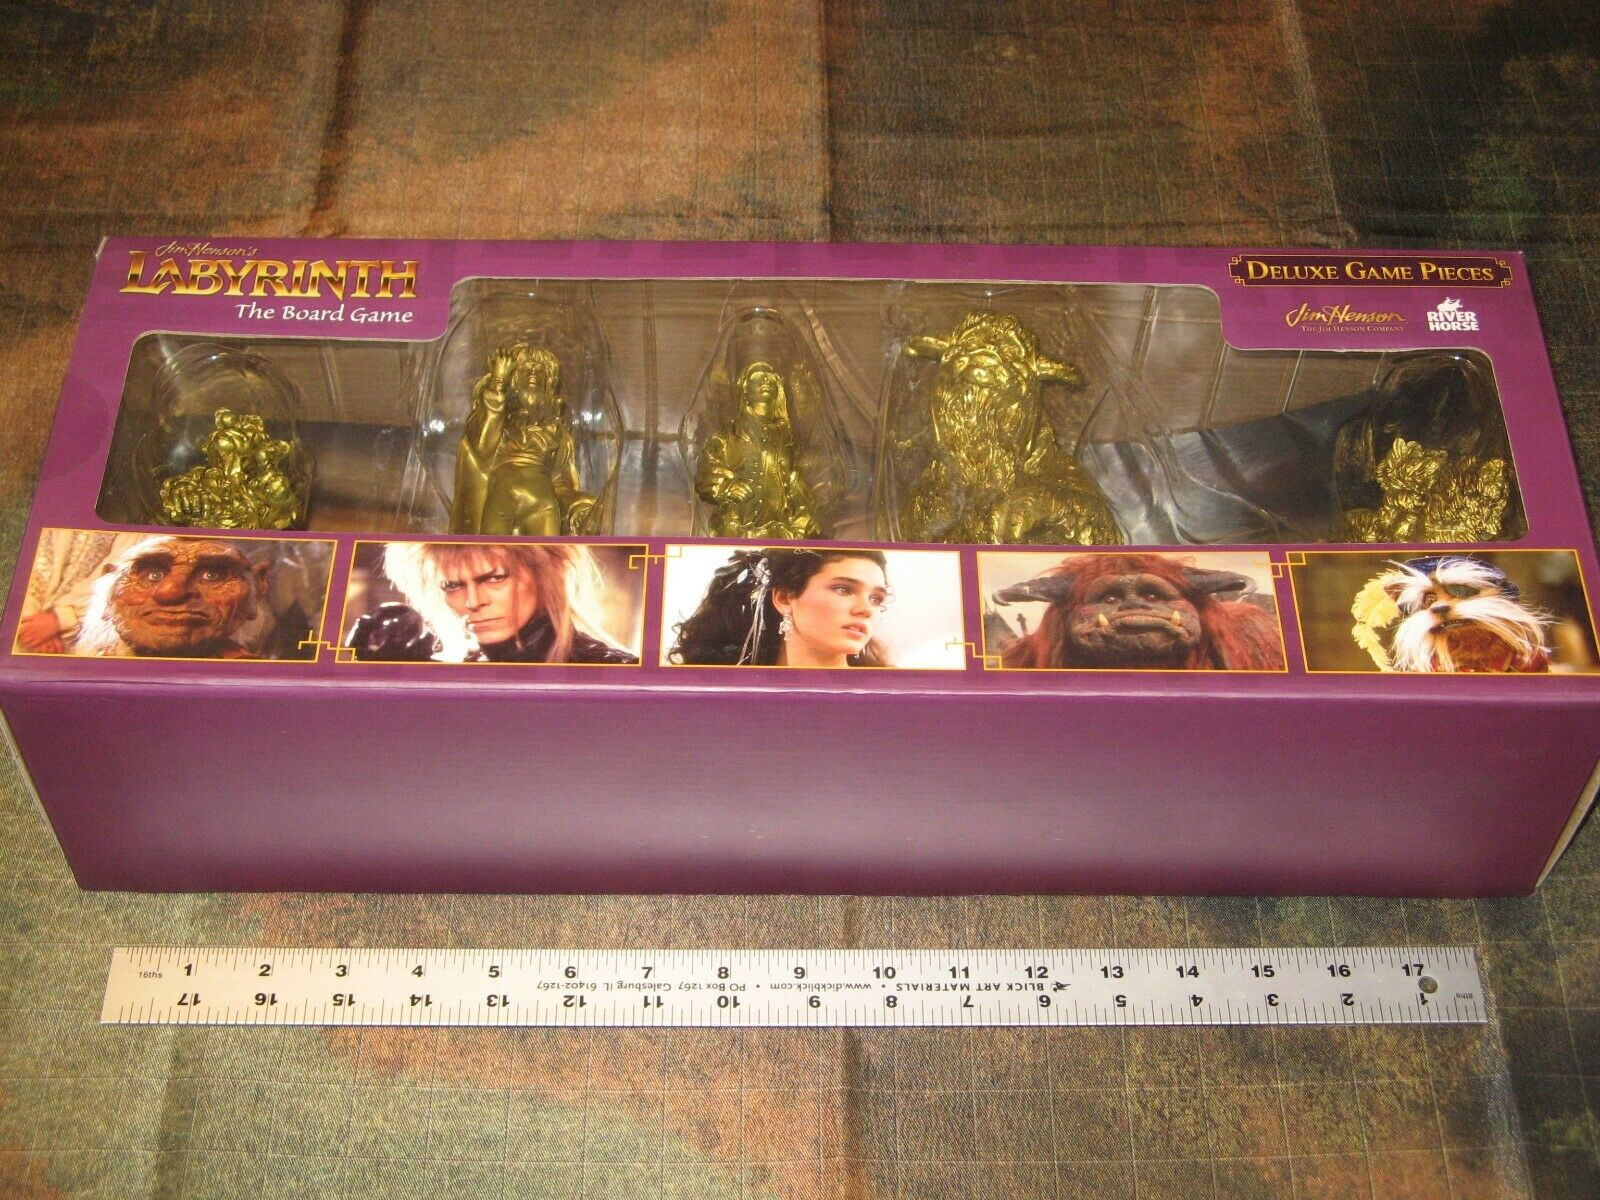 Deluxe [HUGE] gioco Pieces Jim Henson's Labyrinth Labyrinth Labyrinth tavola gioco nuovo 5 miniatures D&D 3aab1f